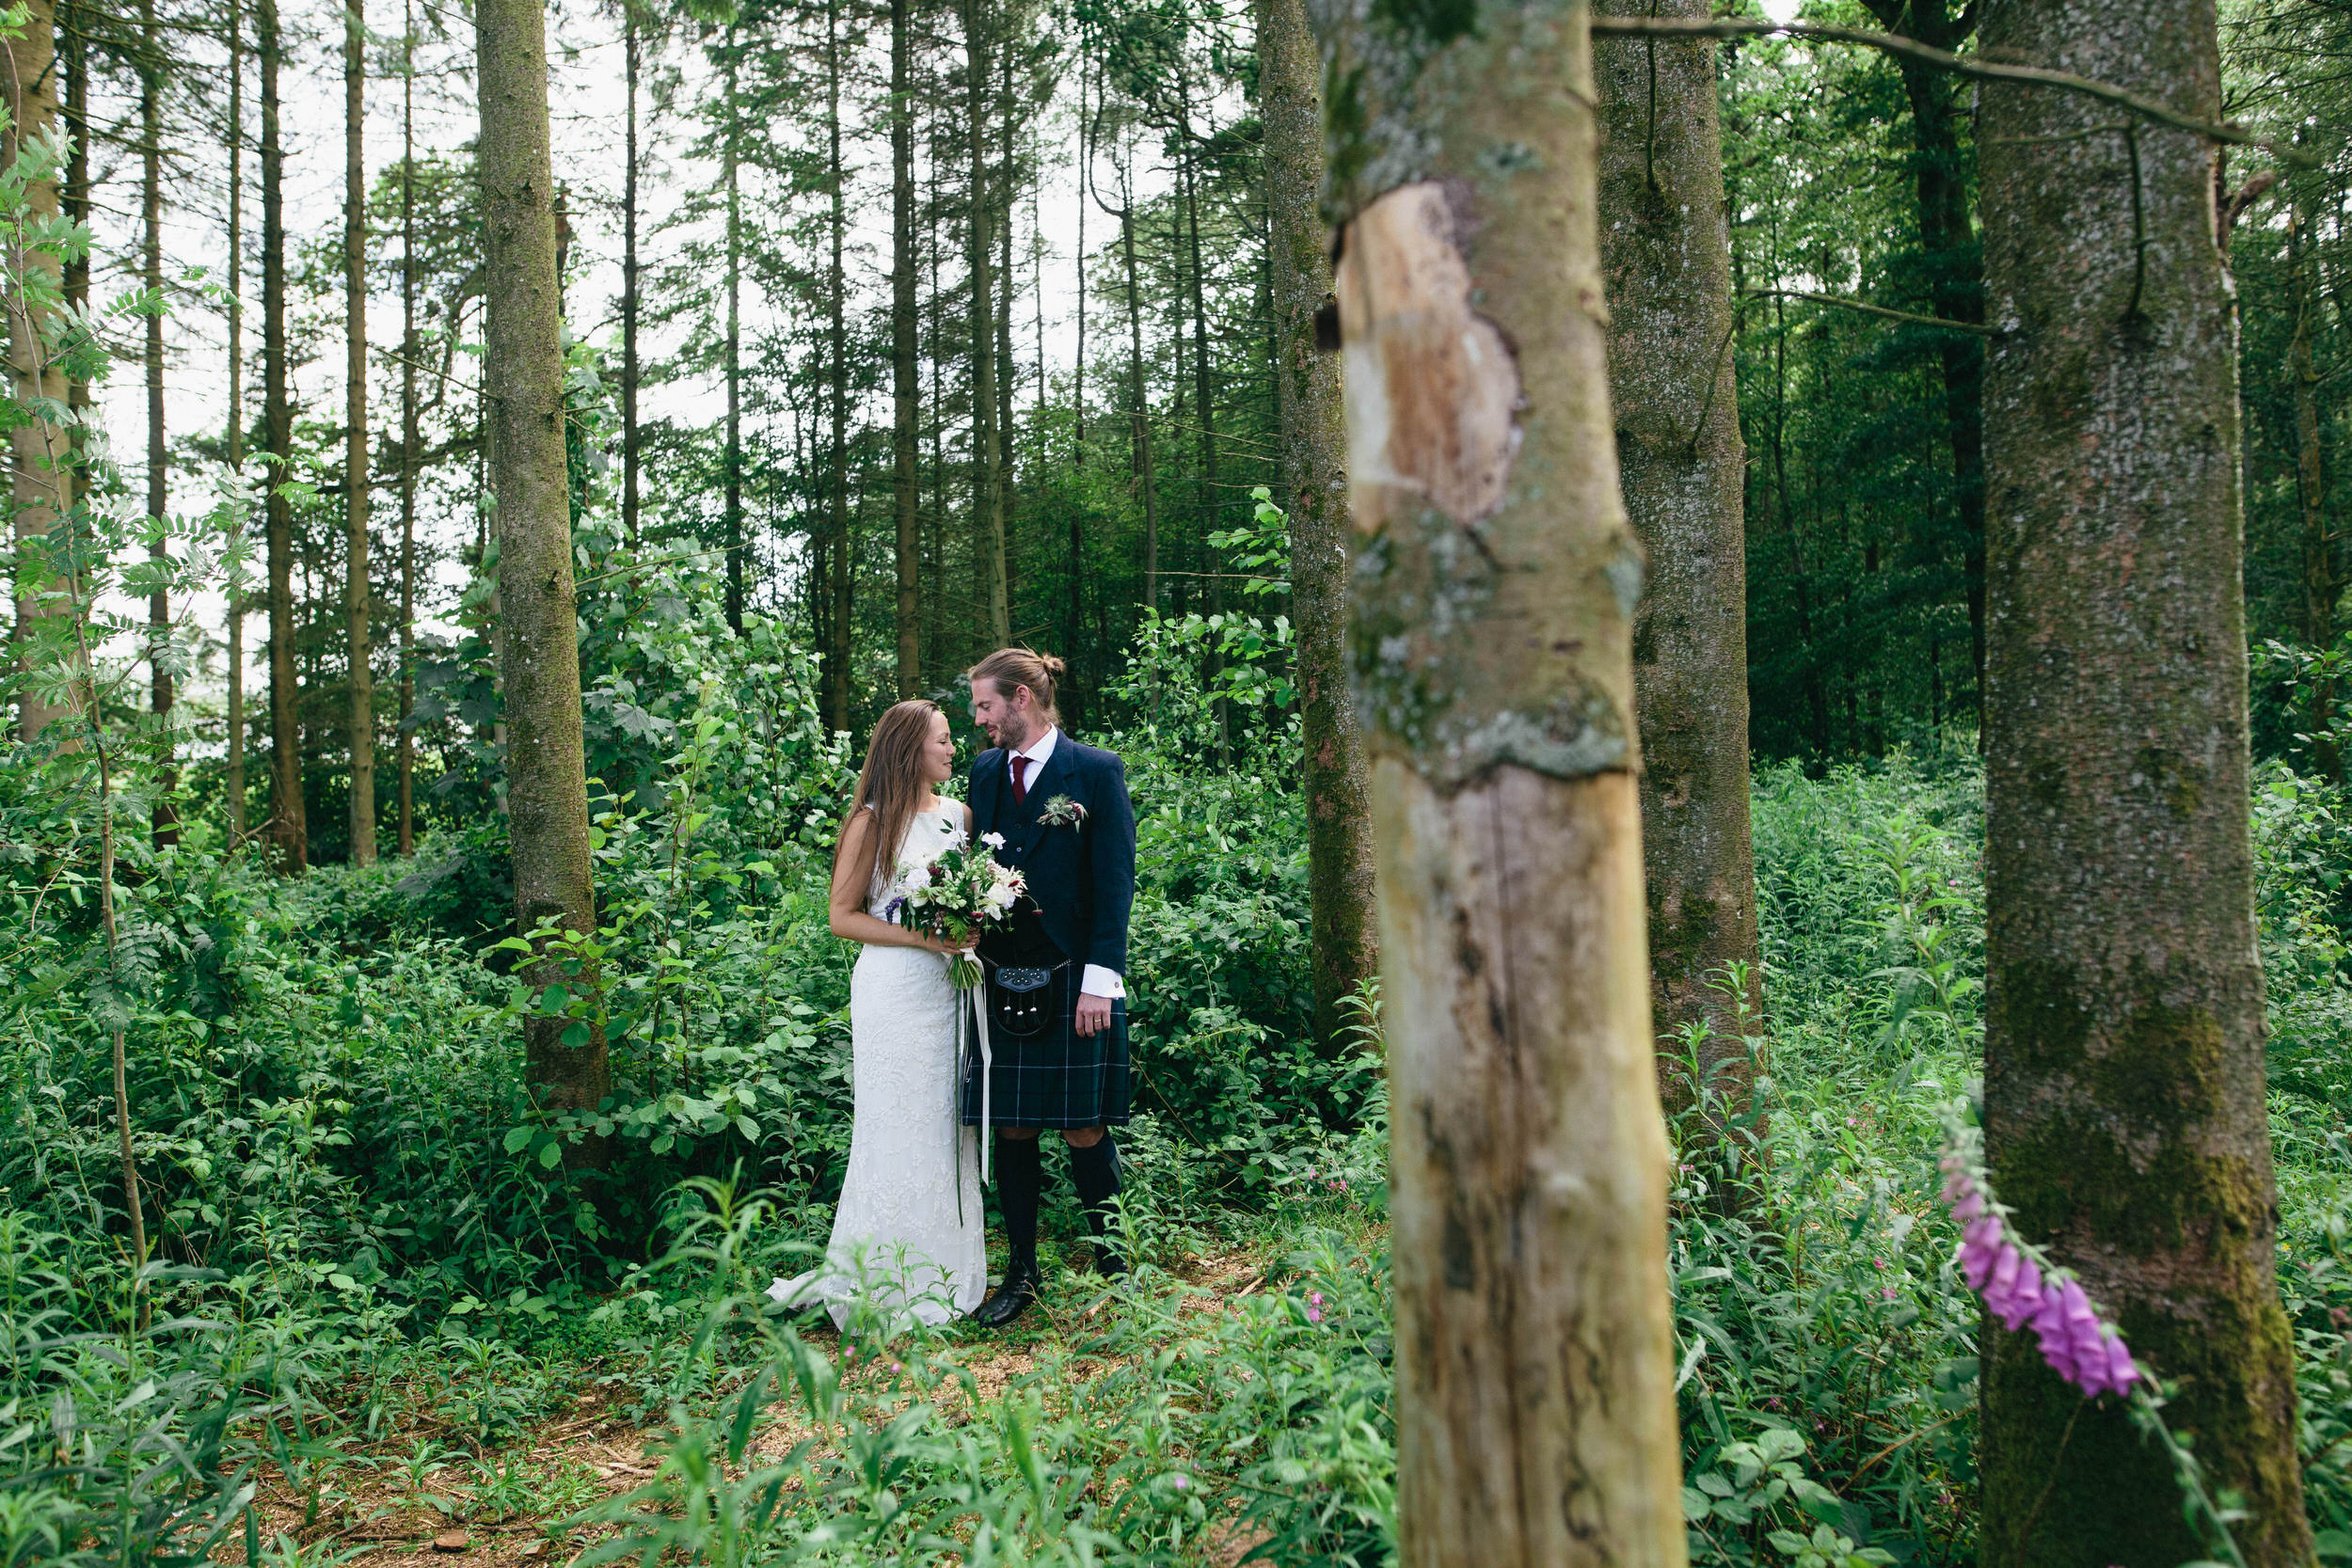 Alternative Quirky Wedding Photographer Scotland Borders Edinburgh 073.jpg